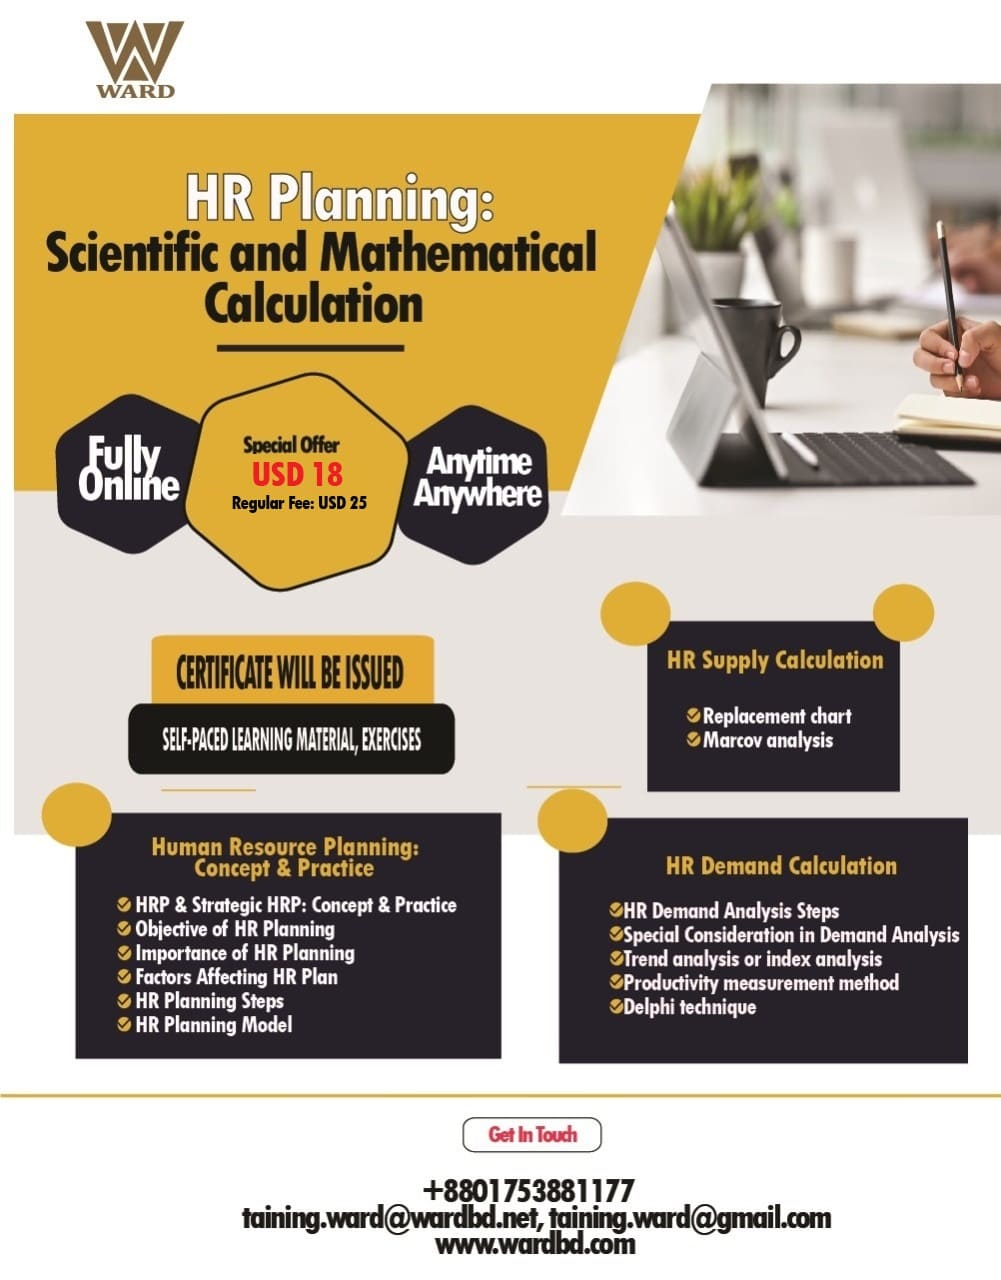 HR Planning: Scientific and Mathematical Calculation